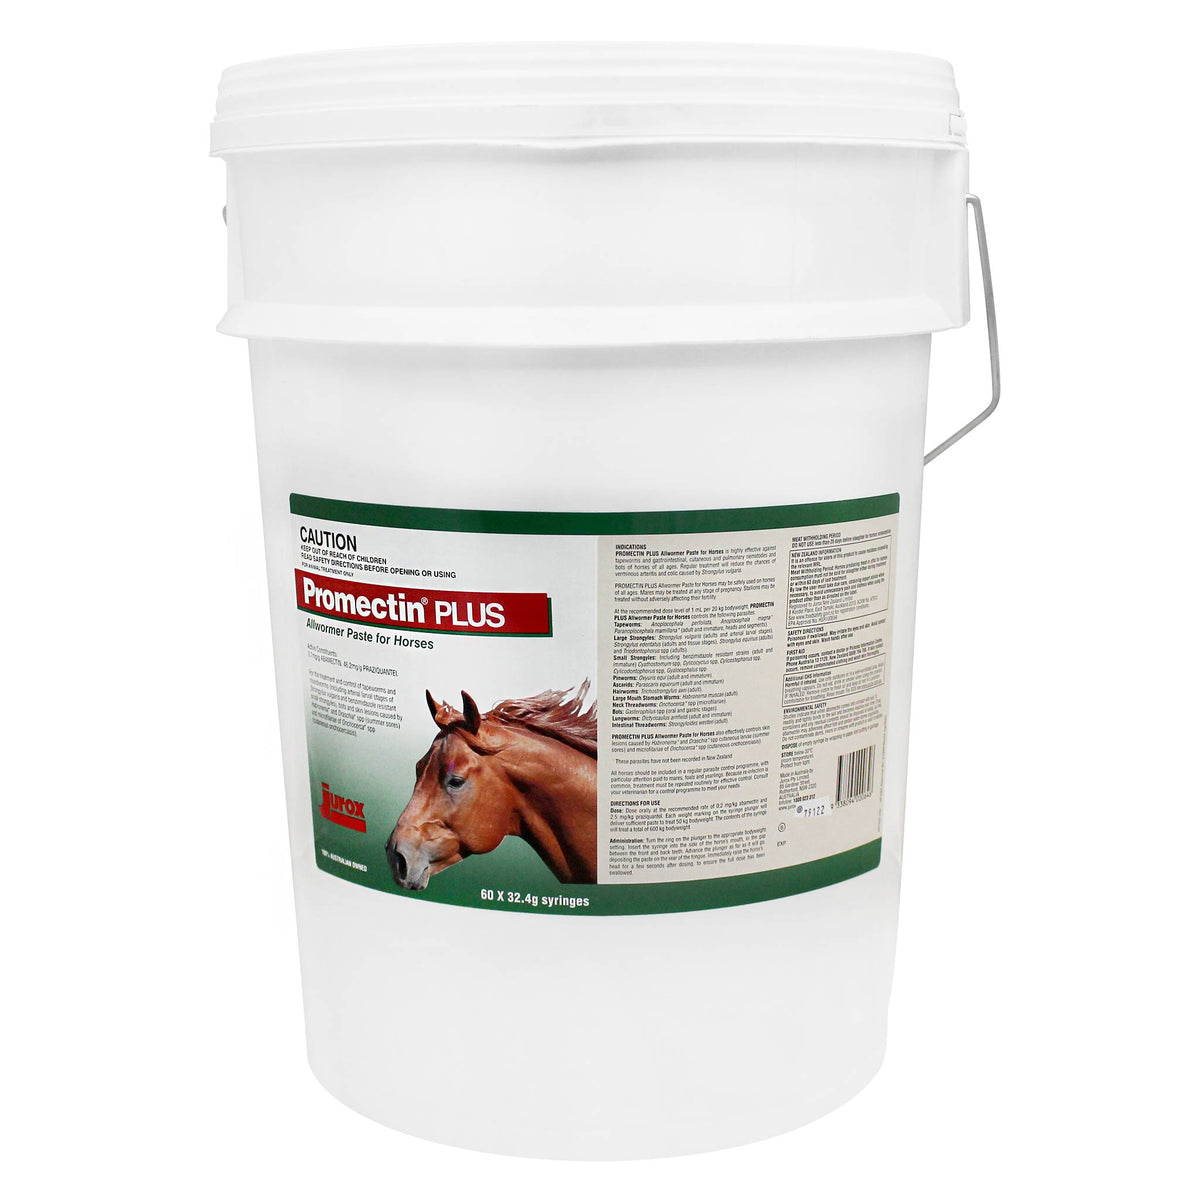 Promectin Plus Worming Paste for Horses - Stud Bucket 60 Tubes